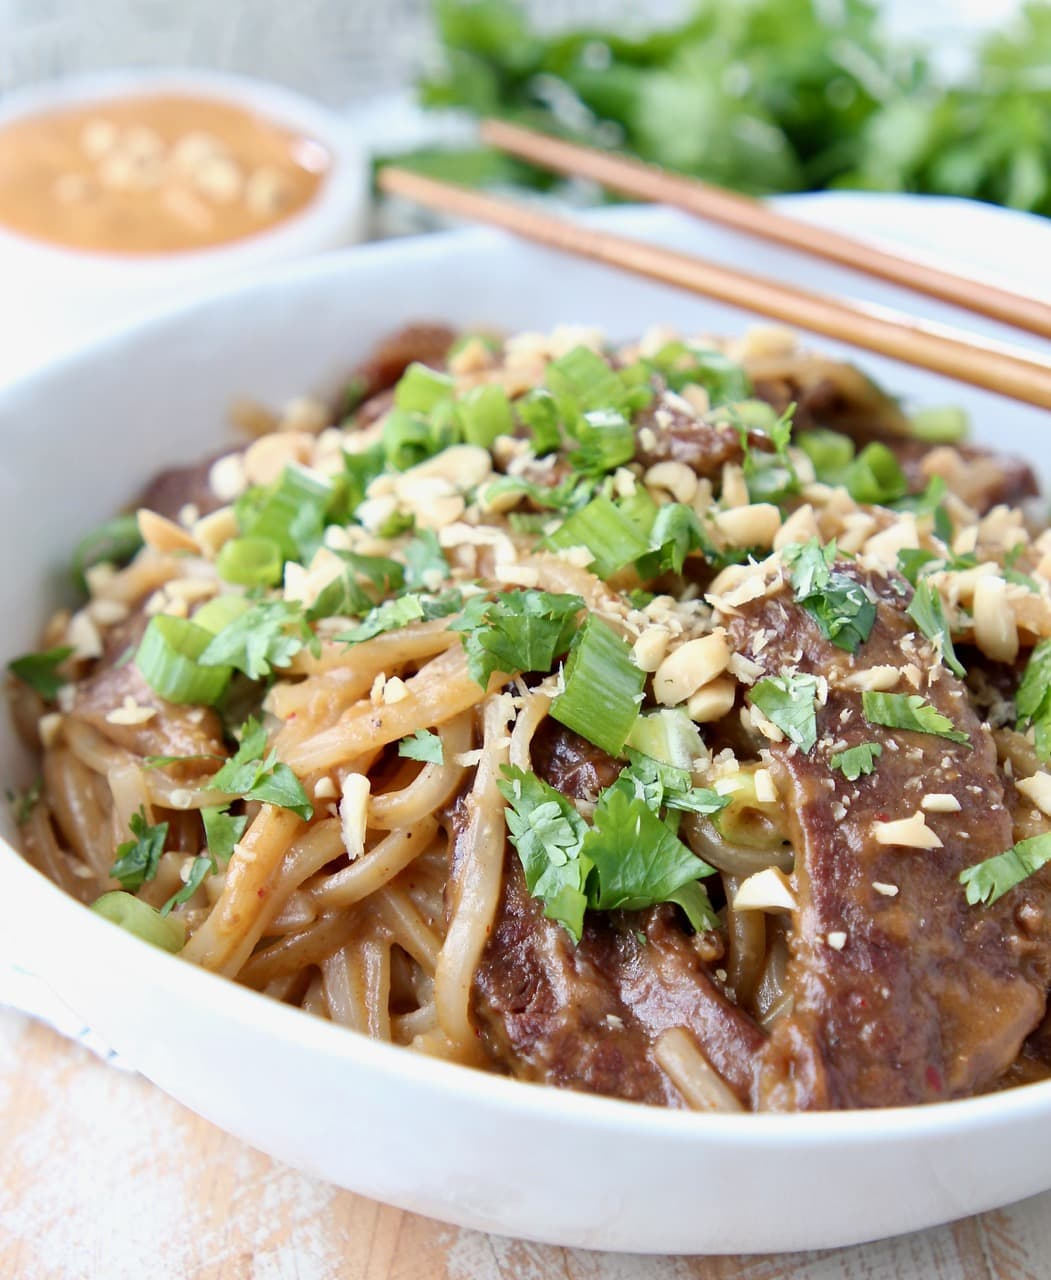 Sliced beef, noodles and sliced green onions in bowl with chopsticks on the side